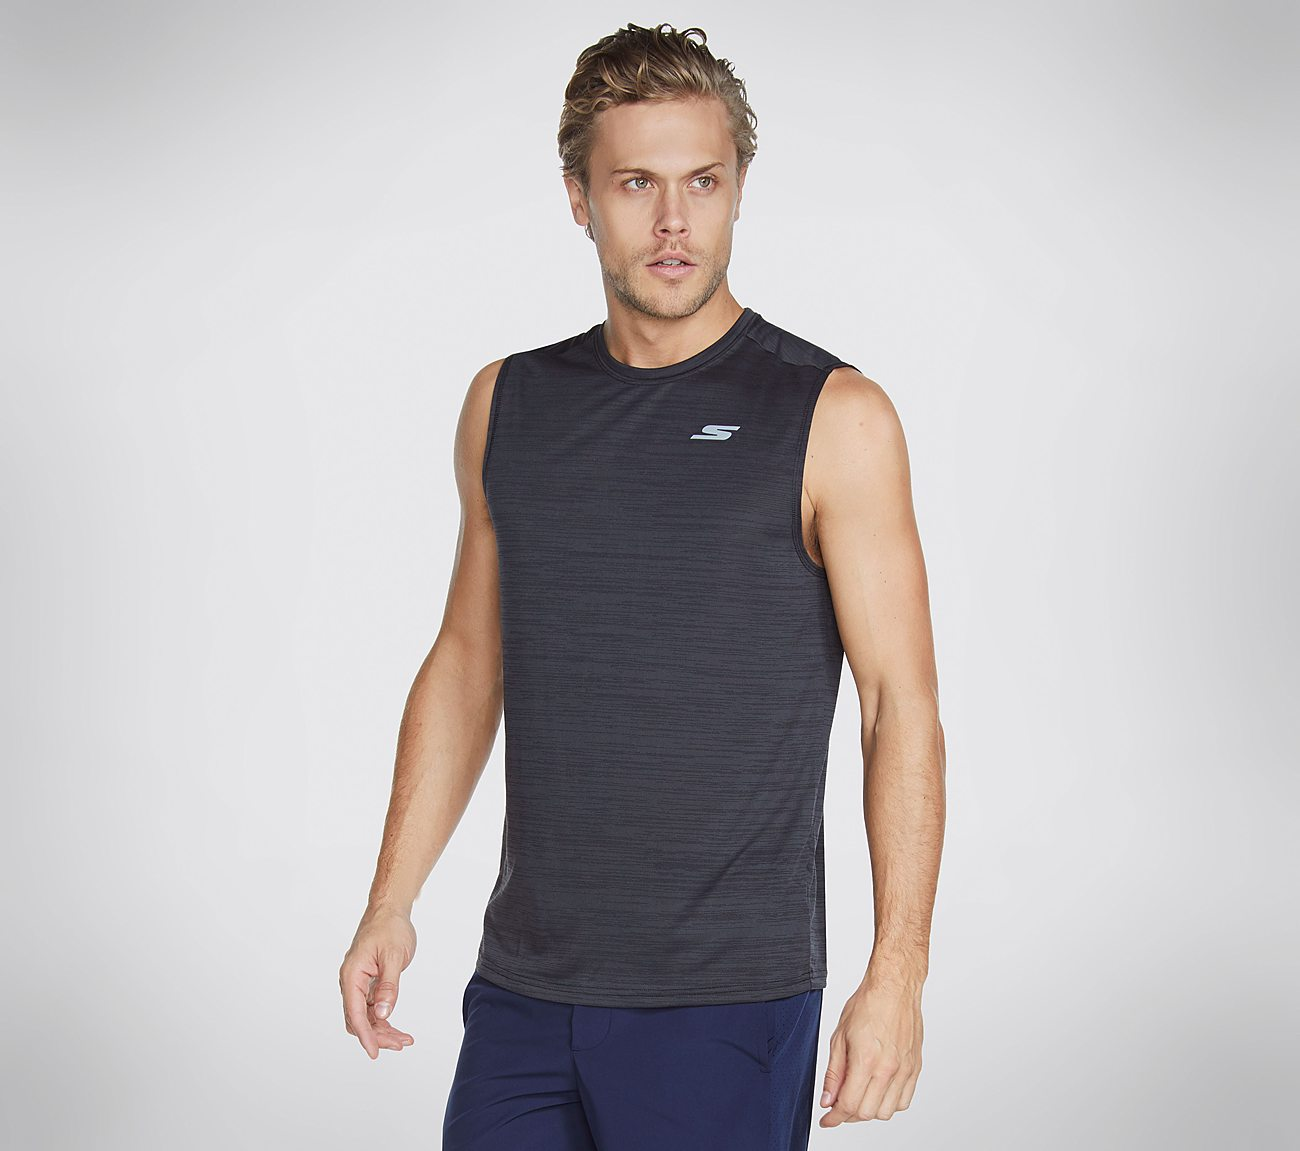 Skechers Apparel Coolness Muscle Tank Top